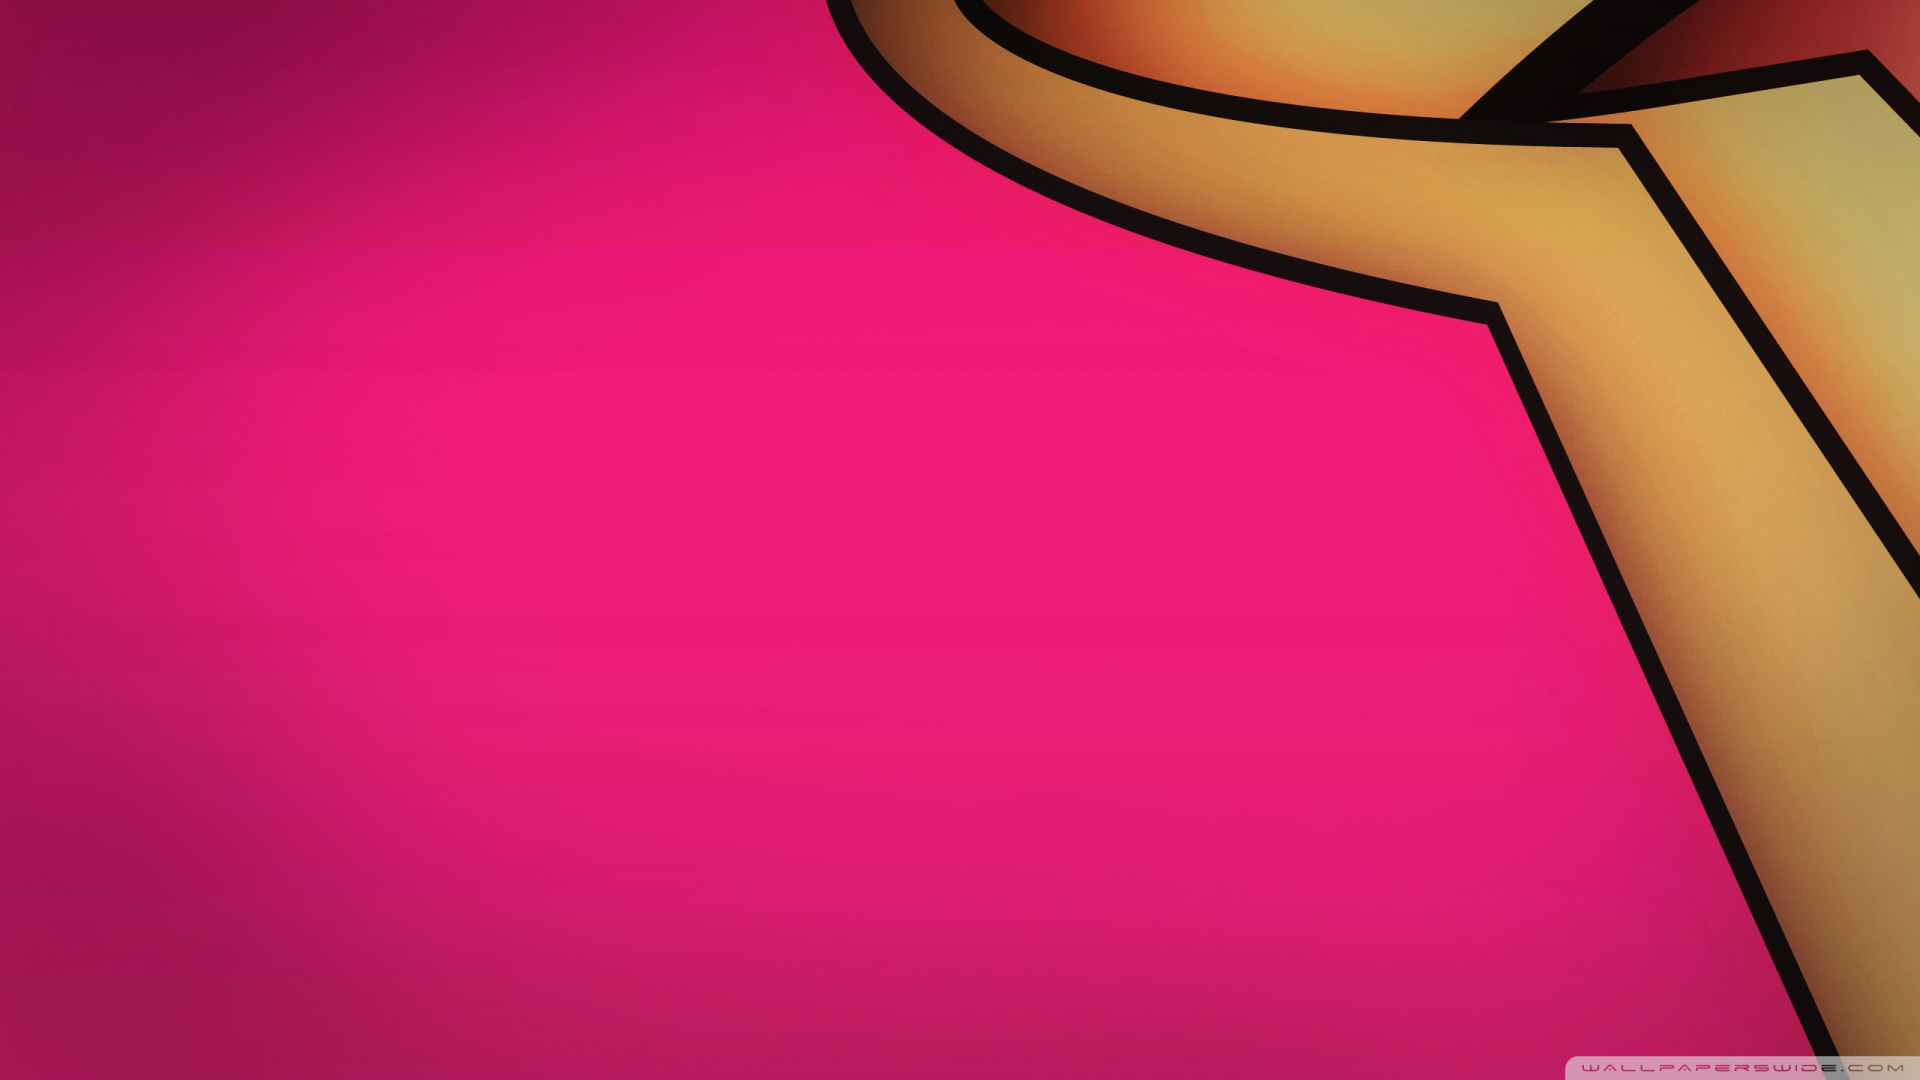 Pink Funky wallpapers HD   396710 1920x1080